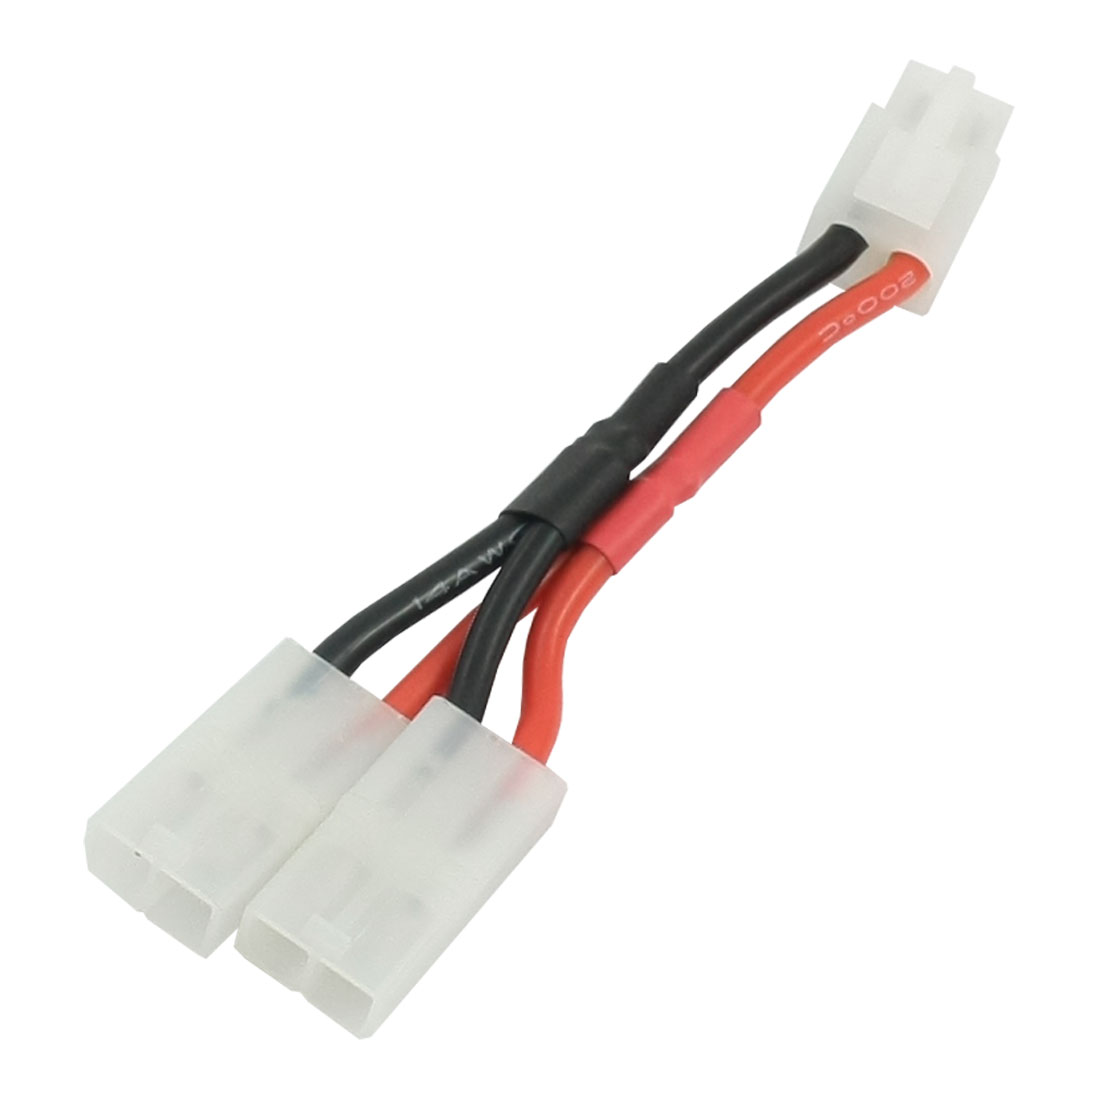 2 in 1 2-Way 1 Male + 2 Female Series Connector Adapter Wire for RC Lipo Battery